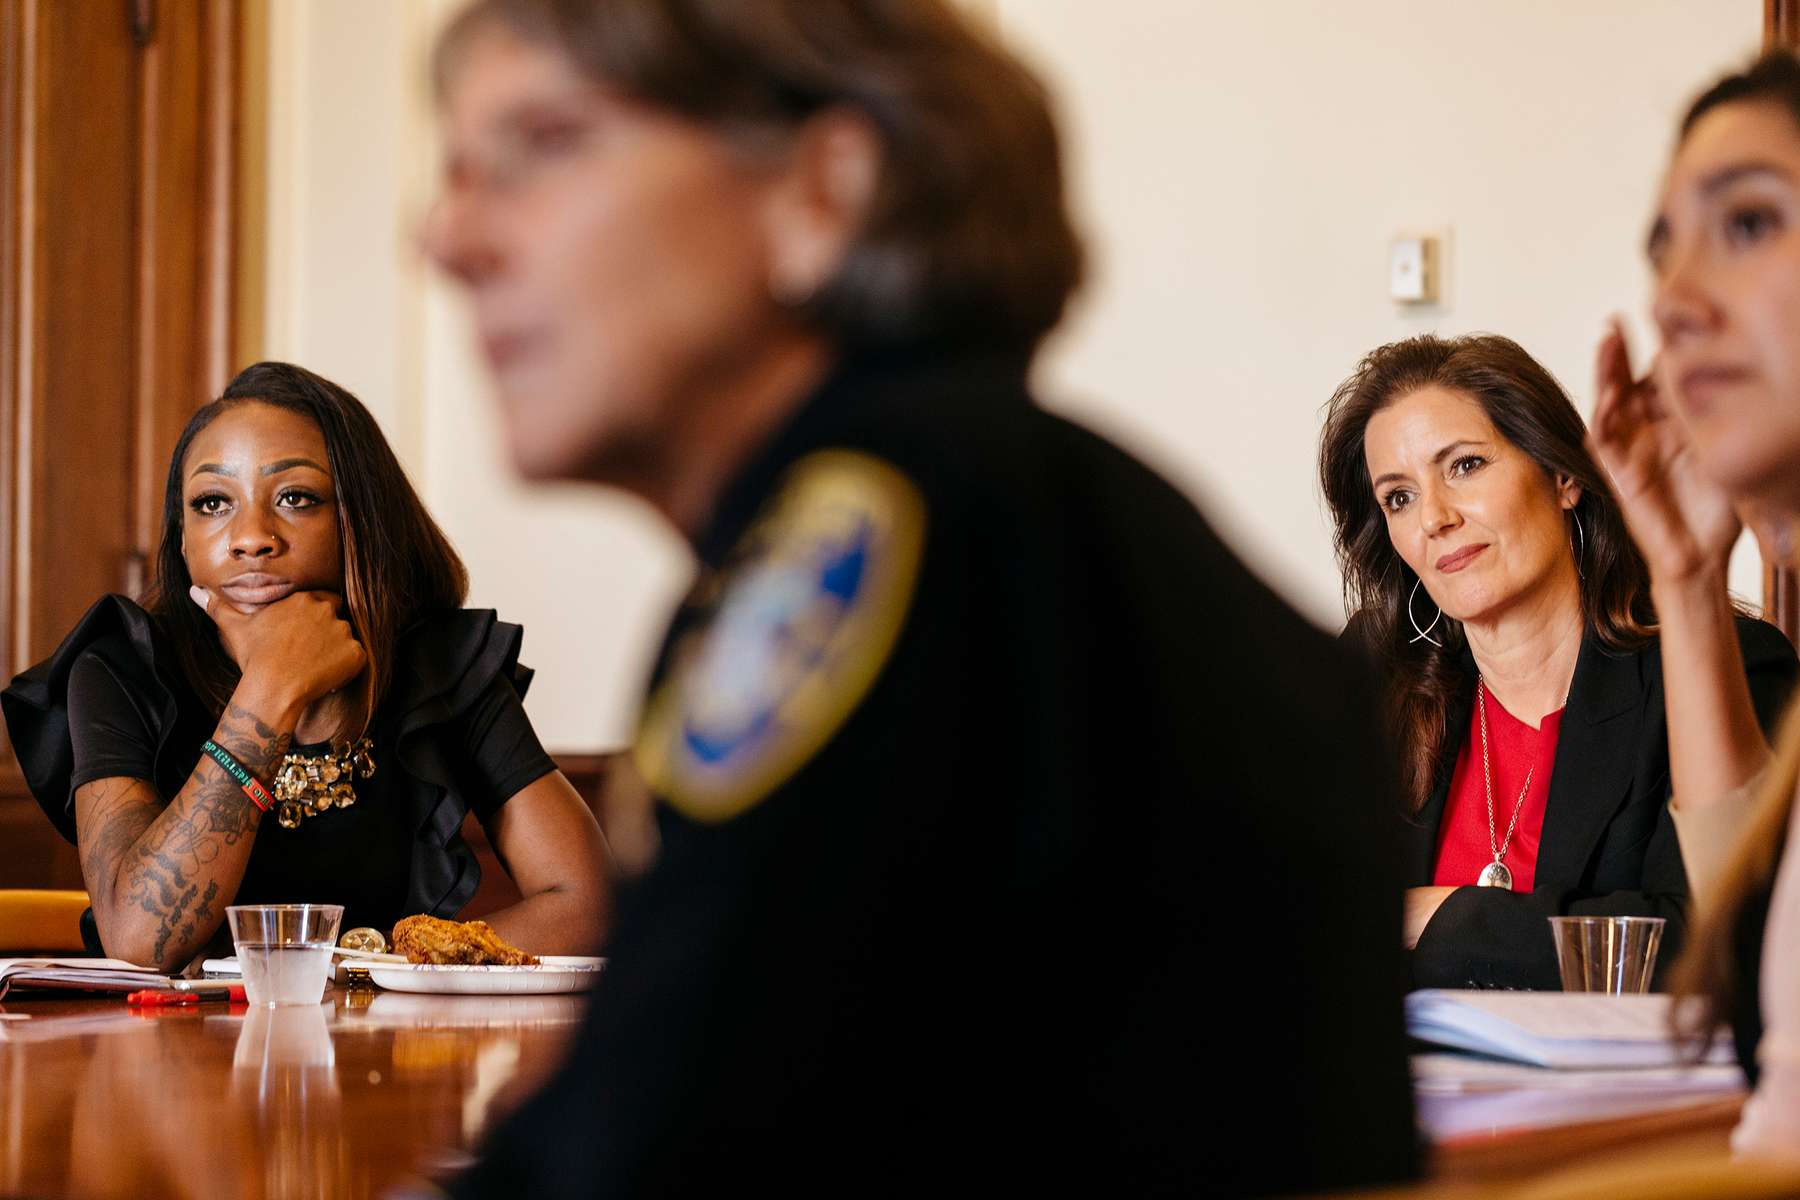 Oakland Mayor Libby Schaaf joins a youth led community roundtable discussion organized by Mya Whitaker, far left, of the Bay Area Urban Debate League on Thursday, June 22, 2017 in City Hall in Oakland, CA. Joining them are Police Chief Anne Kirkpatrick. They discussed issues ranging from police misconduct to summer jobs for students.